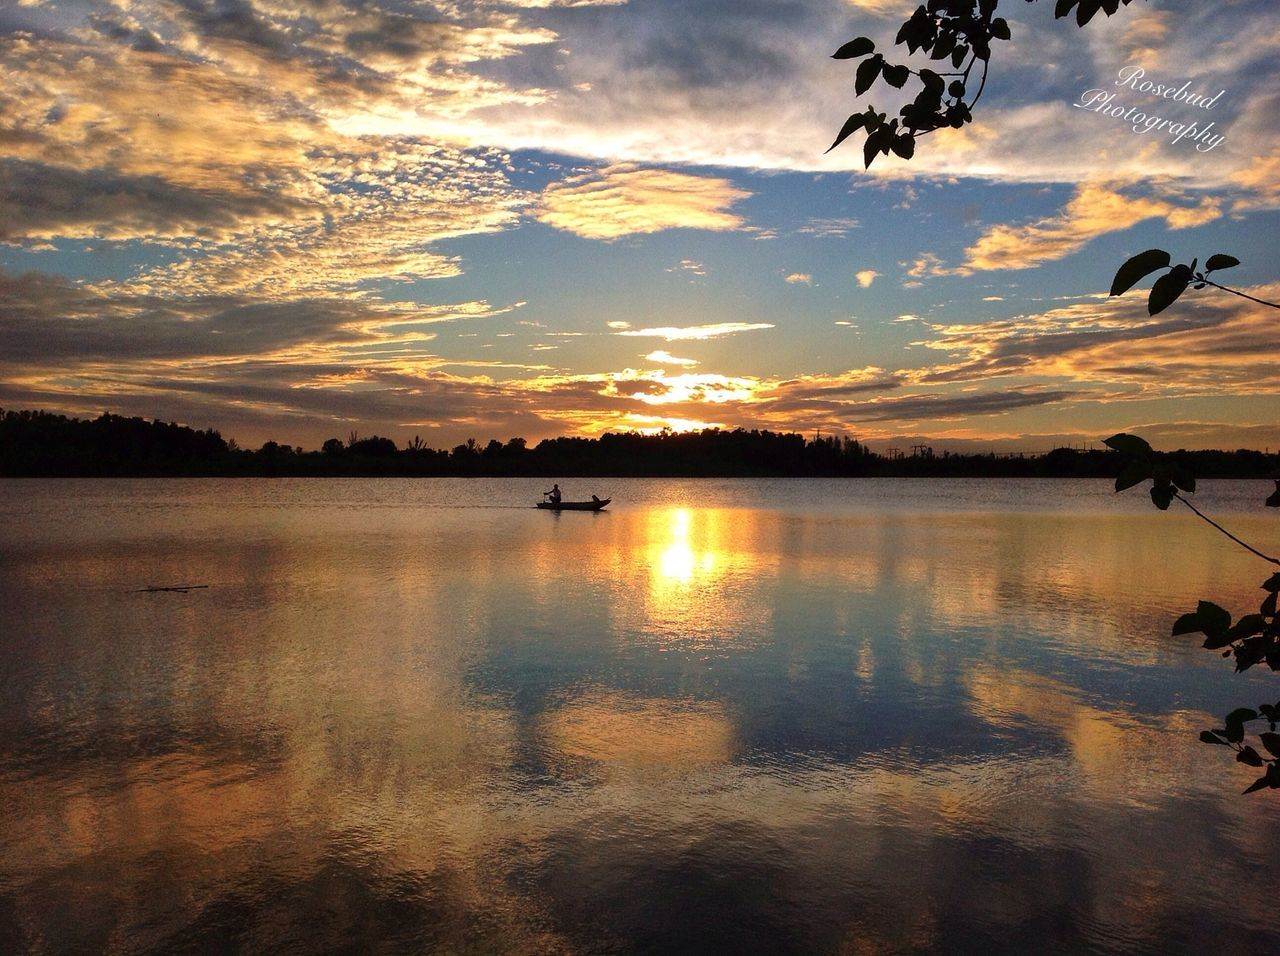 sunset, reflection, sky, water, nature, scenics, cloud - sky, beauty in nature, silhouette, lake, tranquil scene, tranquility, no people, idyllic, outdoors, bird, animal themes, animals in the wild, tree, day